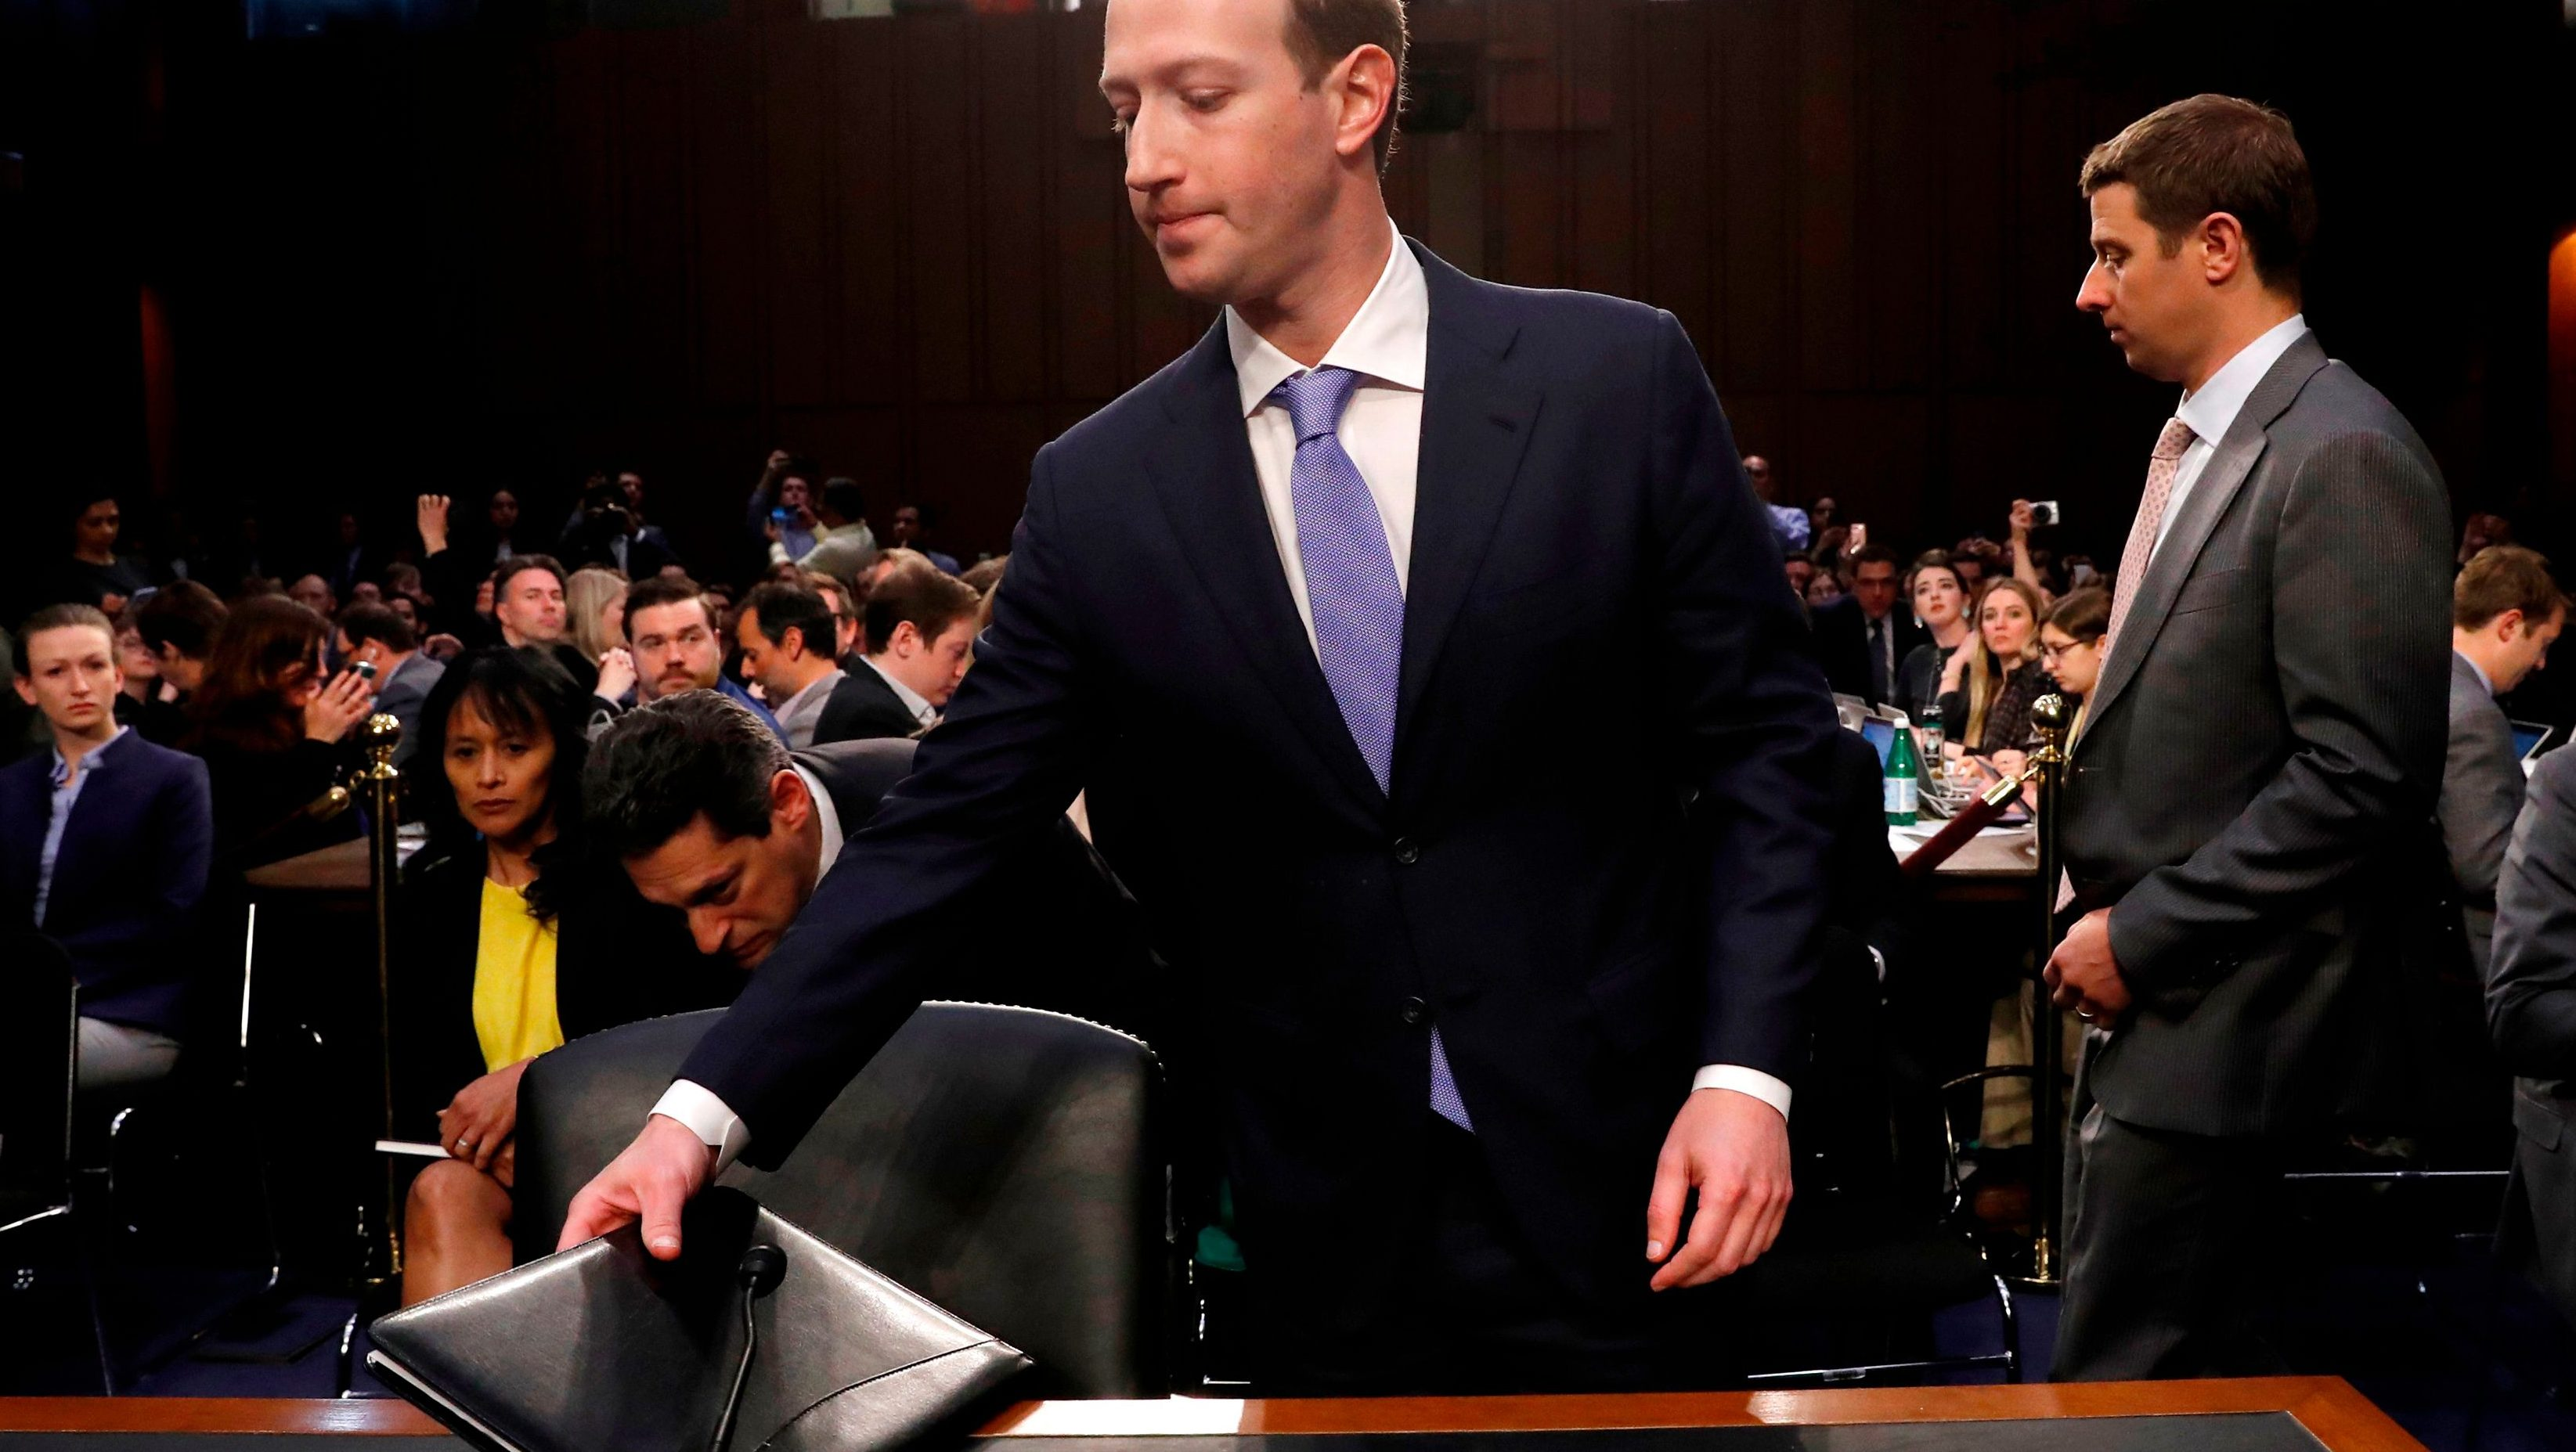 Facebook CEO Mark Zuckerberg sits down following a break to resume testifying before a joint Senate Judiciary and Commerce Committees hearing regarding the company's use and protection of user data, on Capitol Hill in Washington, U.S., April 10, 2018. REUTERS/Leah Millis - HP1EE4A1LLR6S